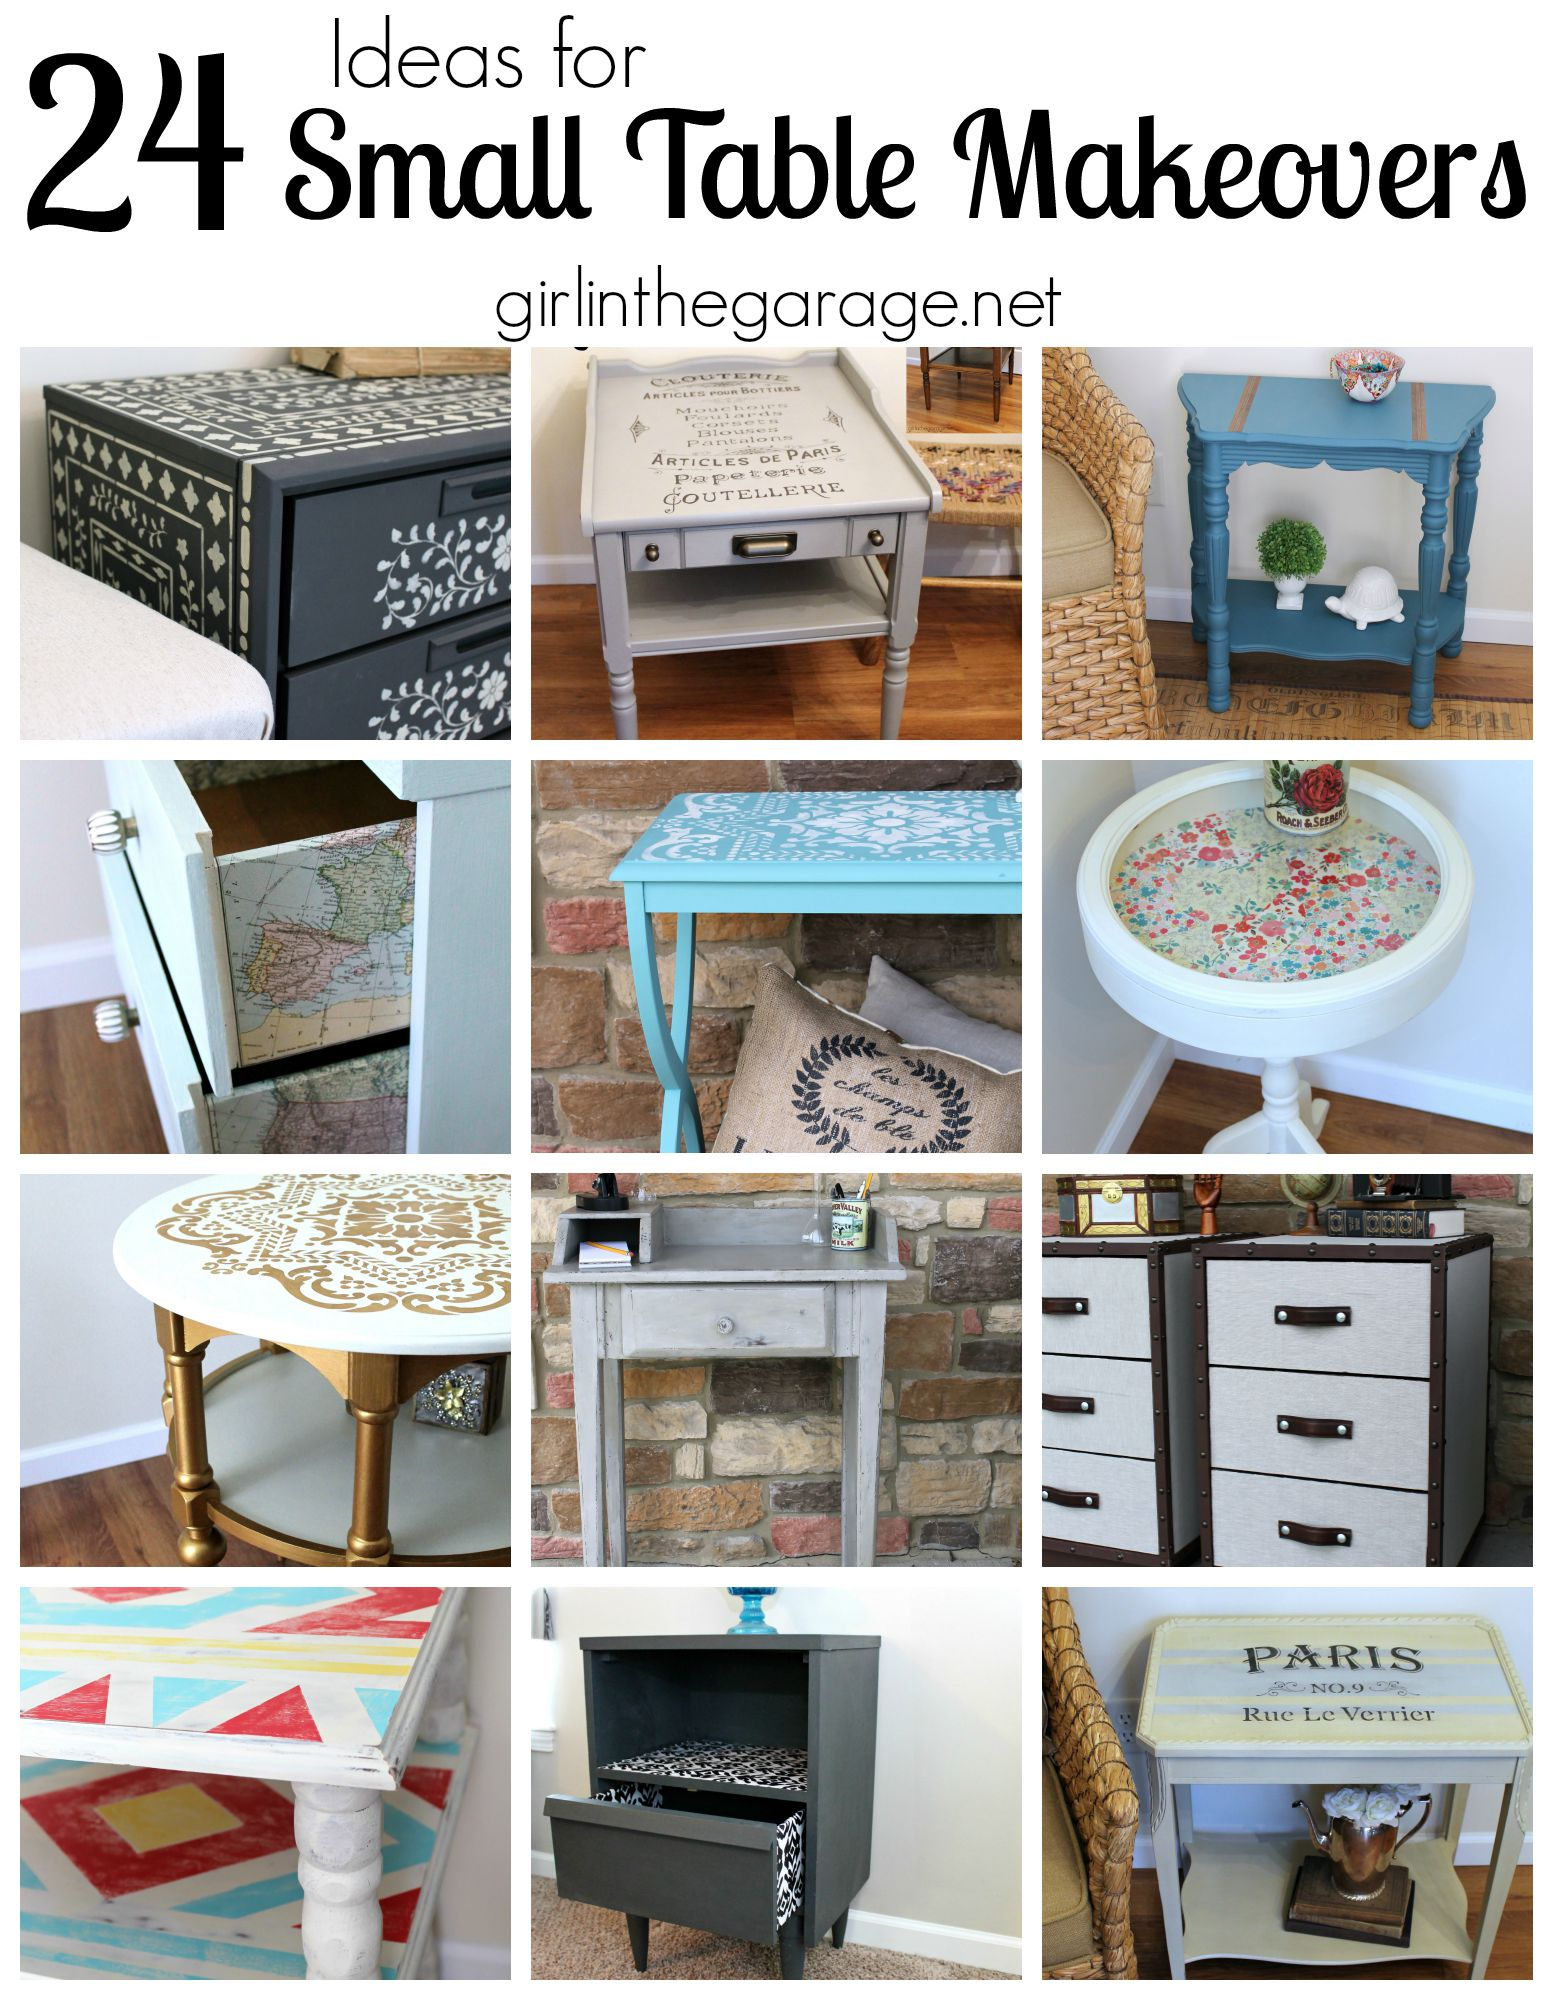 Inspiration for small table makeovers using paint, stencils, image  transfer, decoupage, and